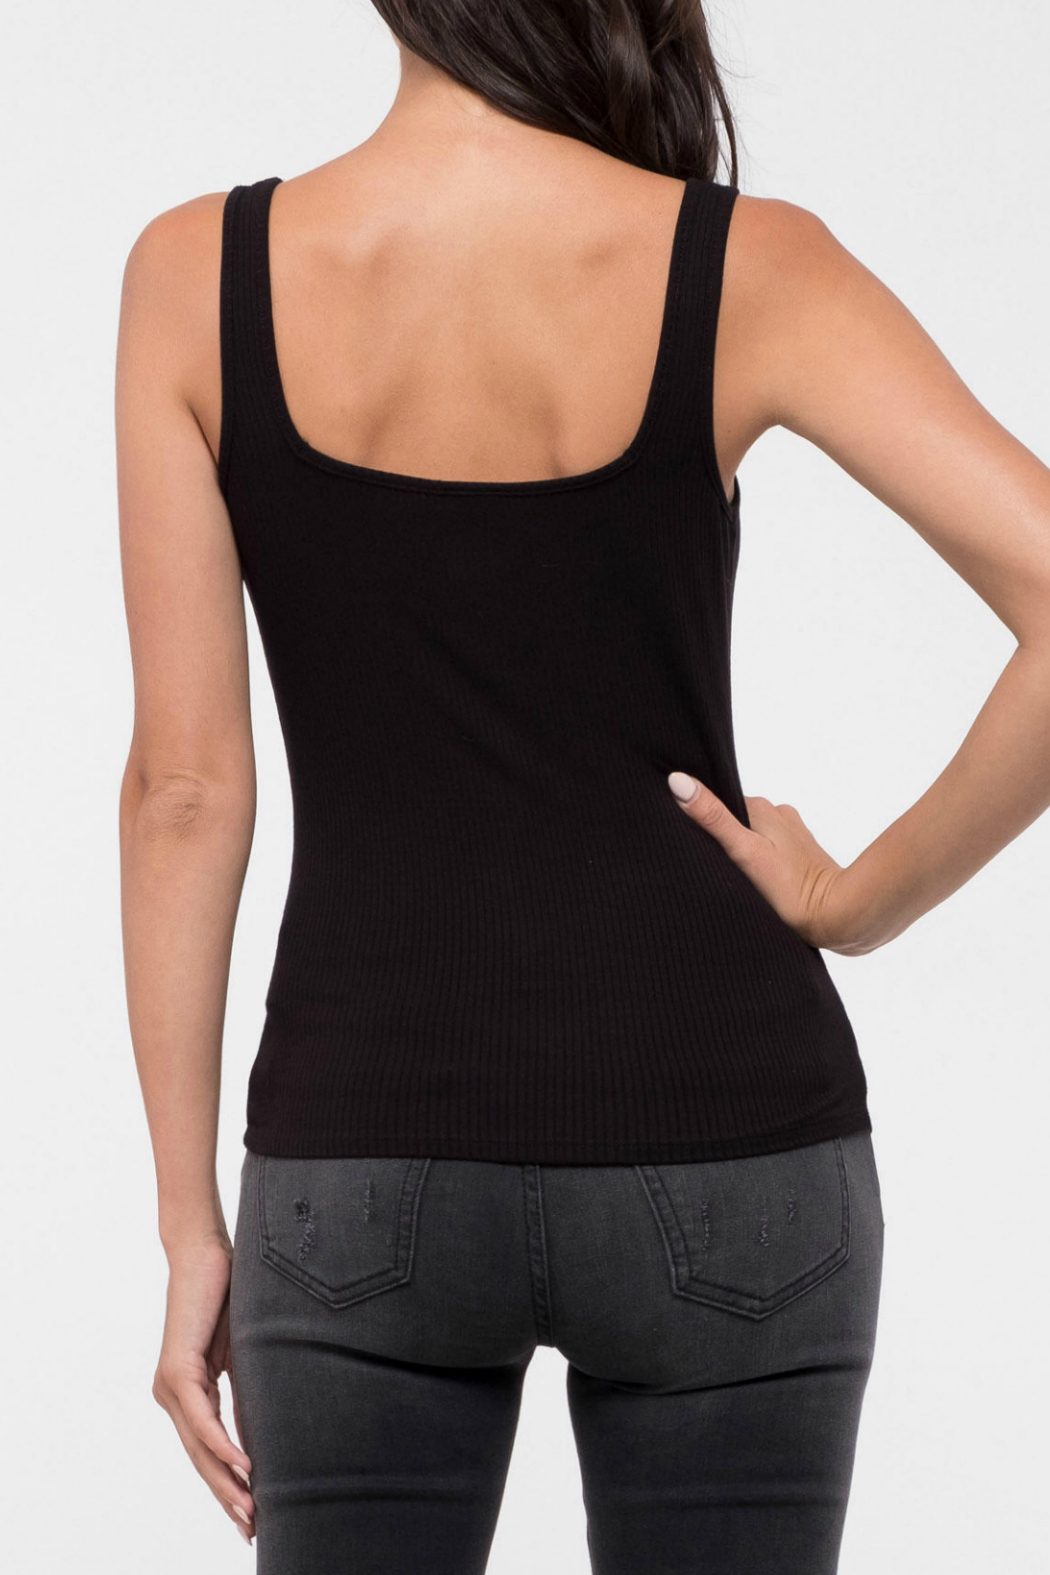 blu Pepper  Square knit cami - Front Full Image